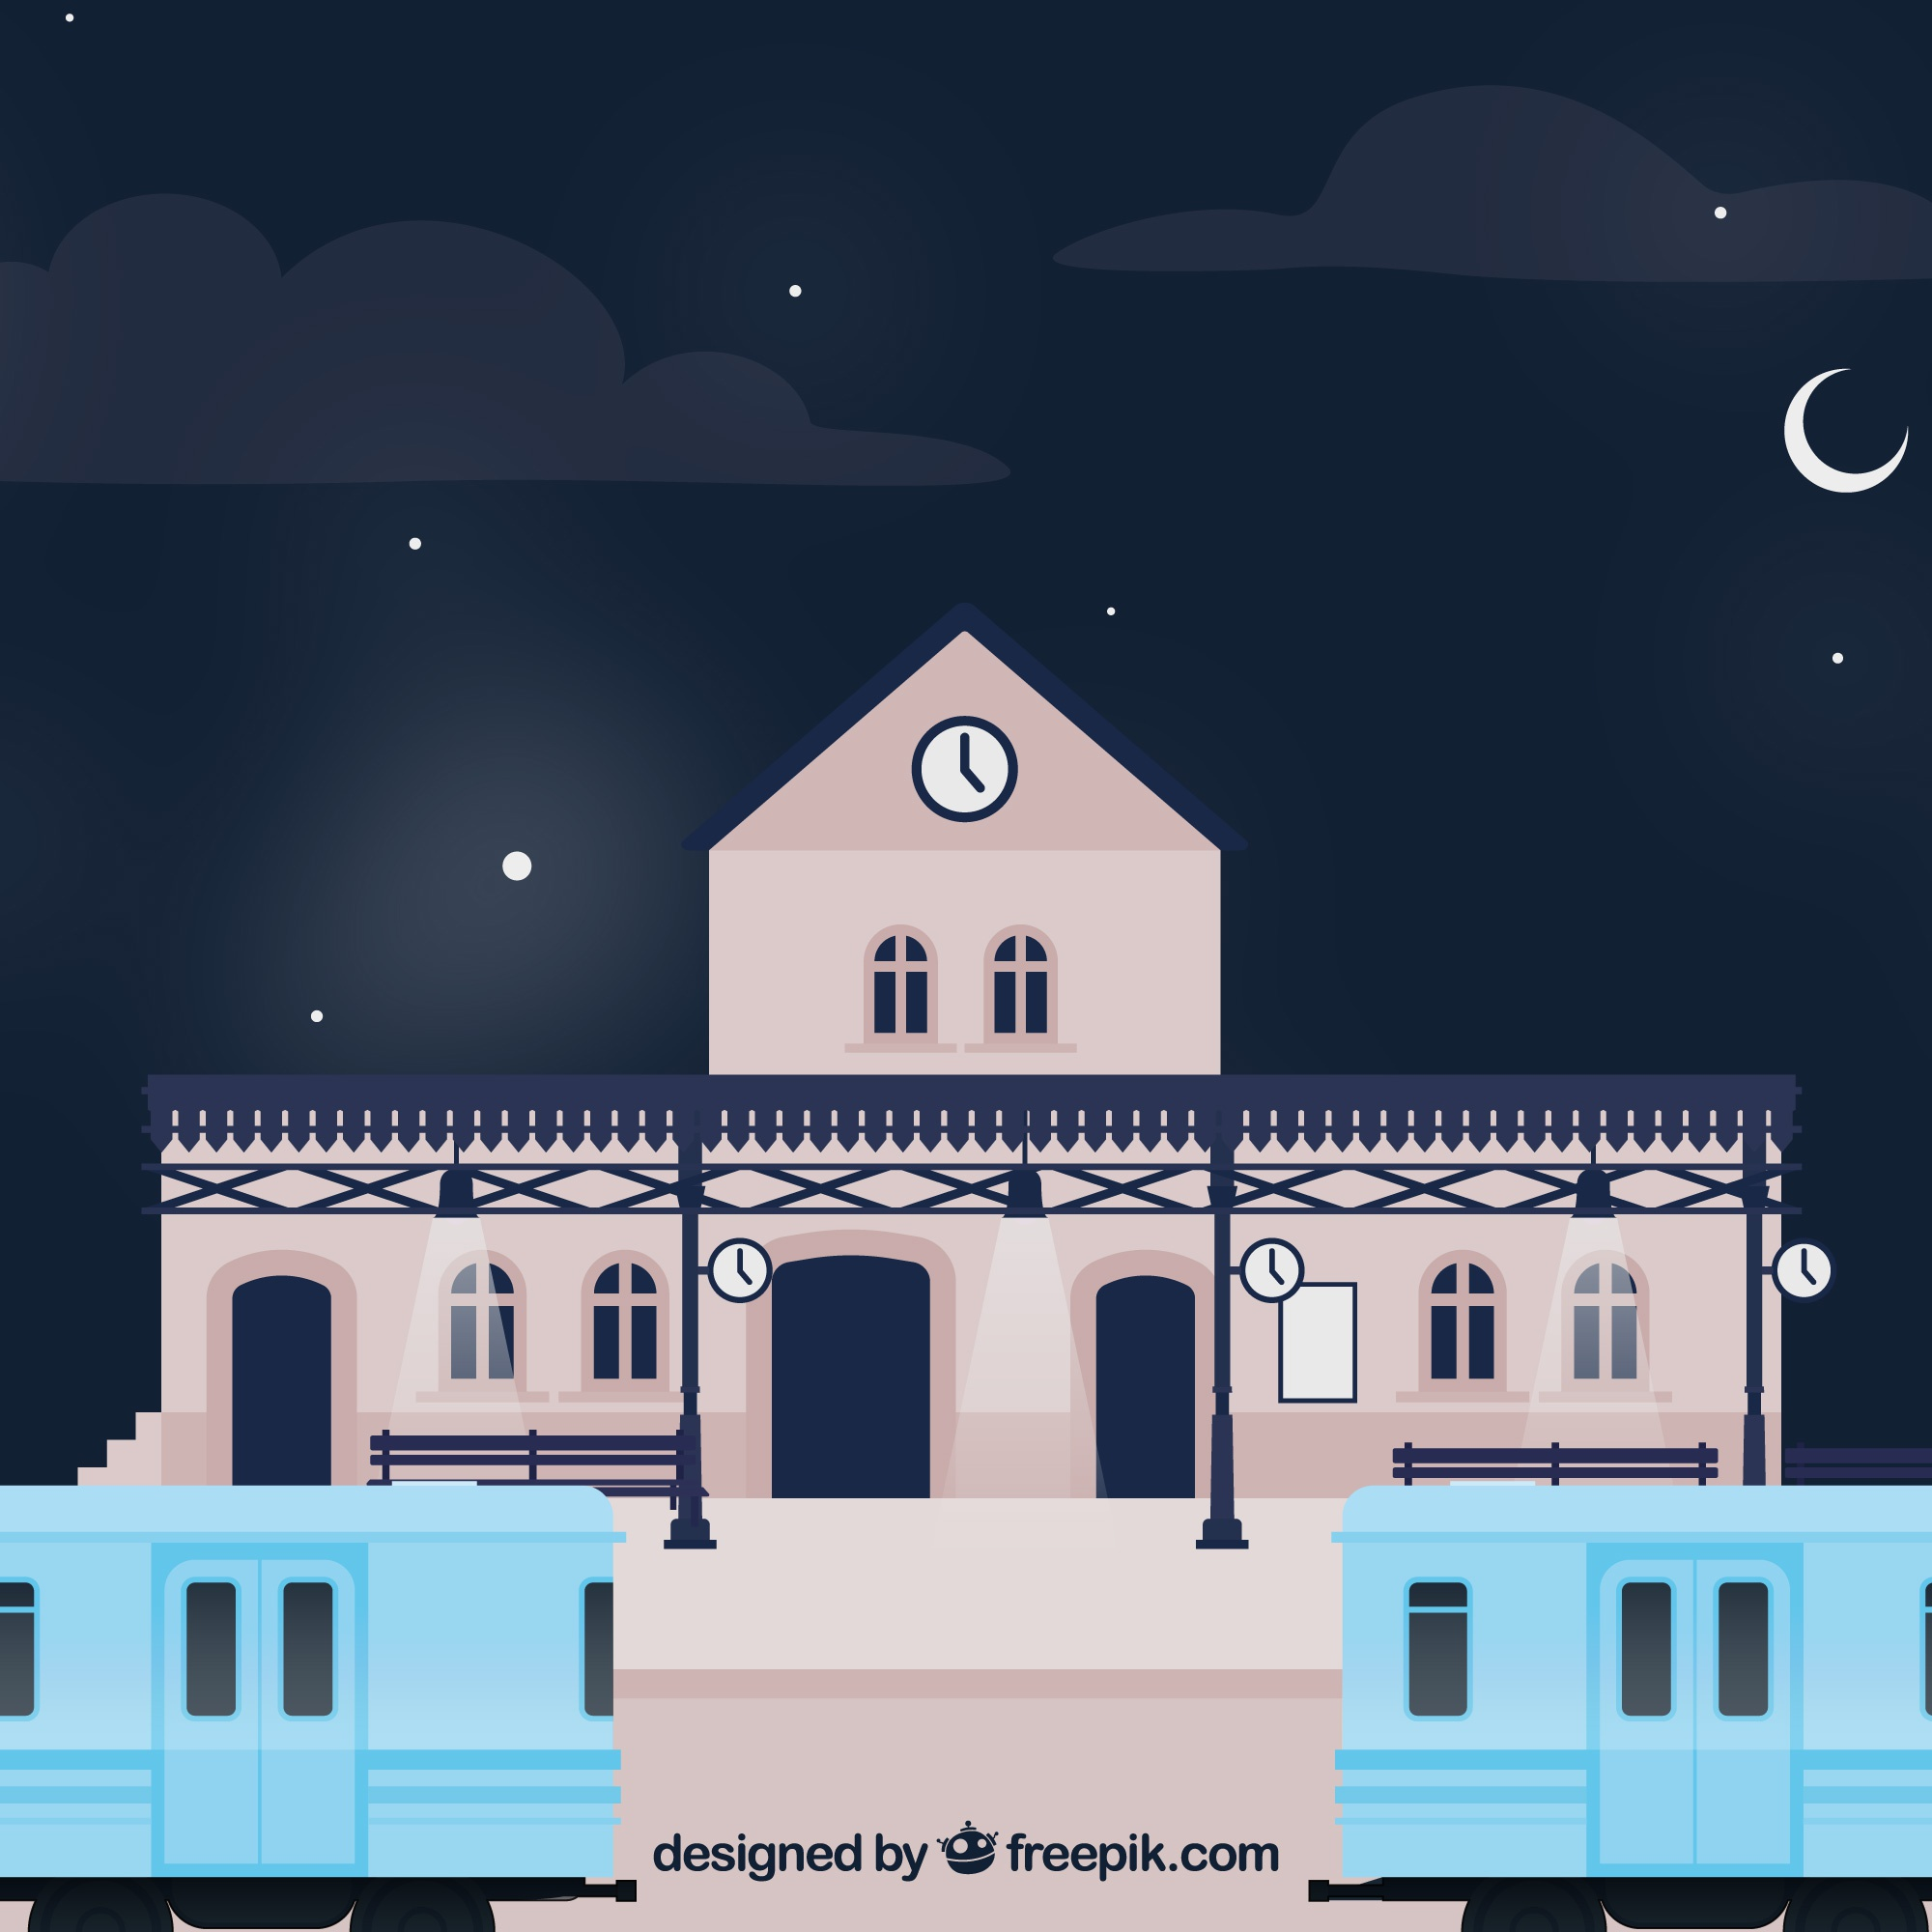 Night background with train station